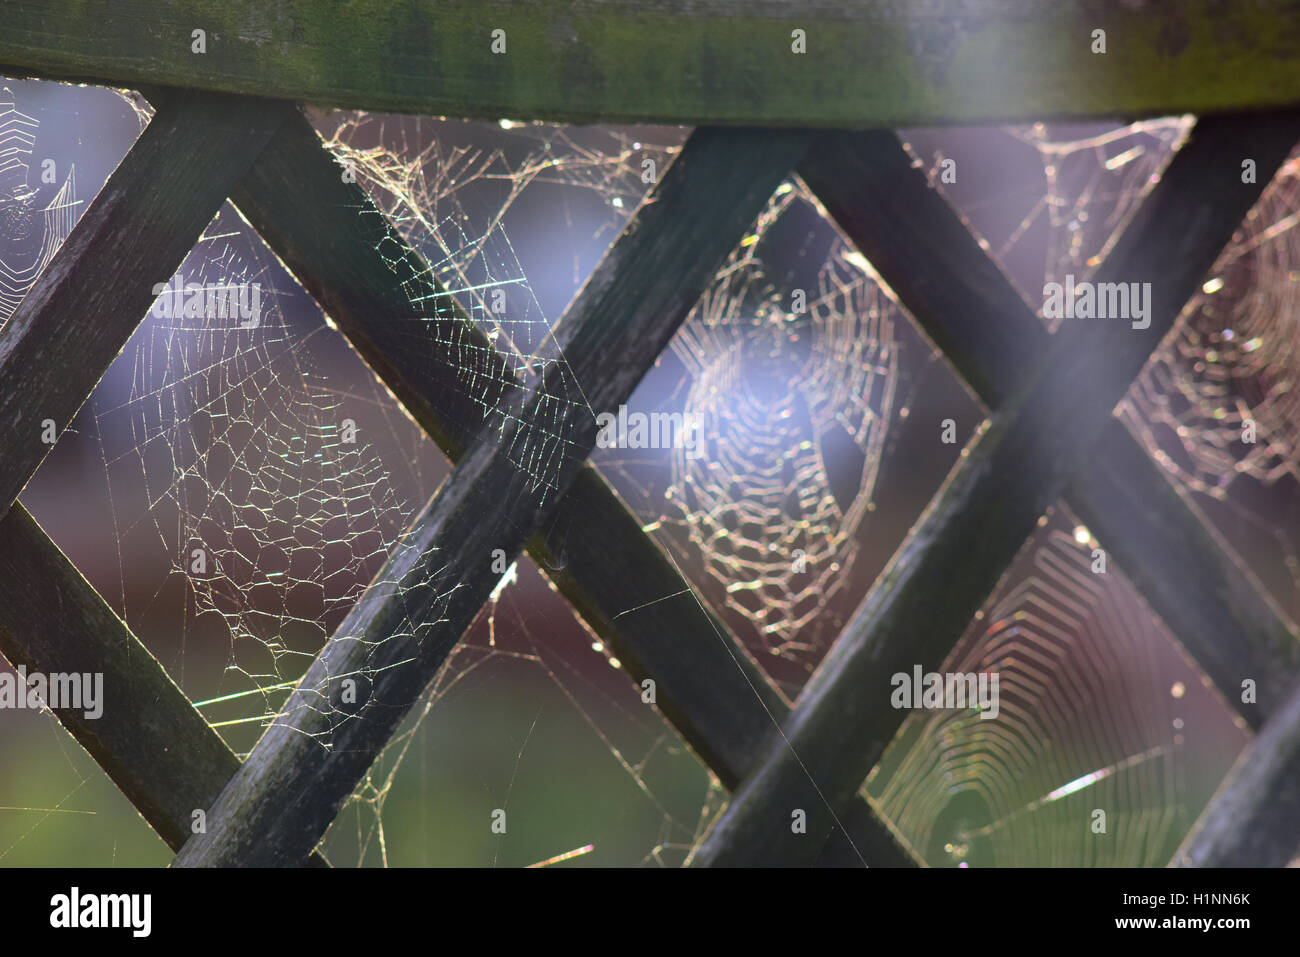 spiders webs on garden fence covered in early morning dew york yorkshire united kingdom - Stock Image